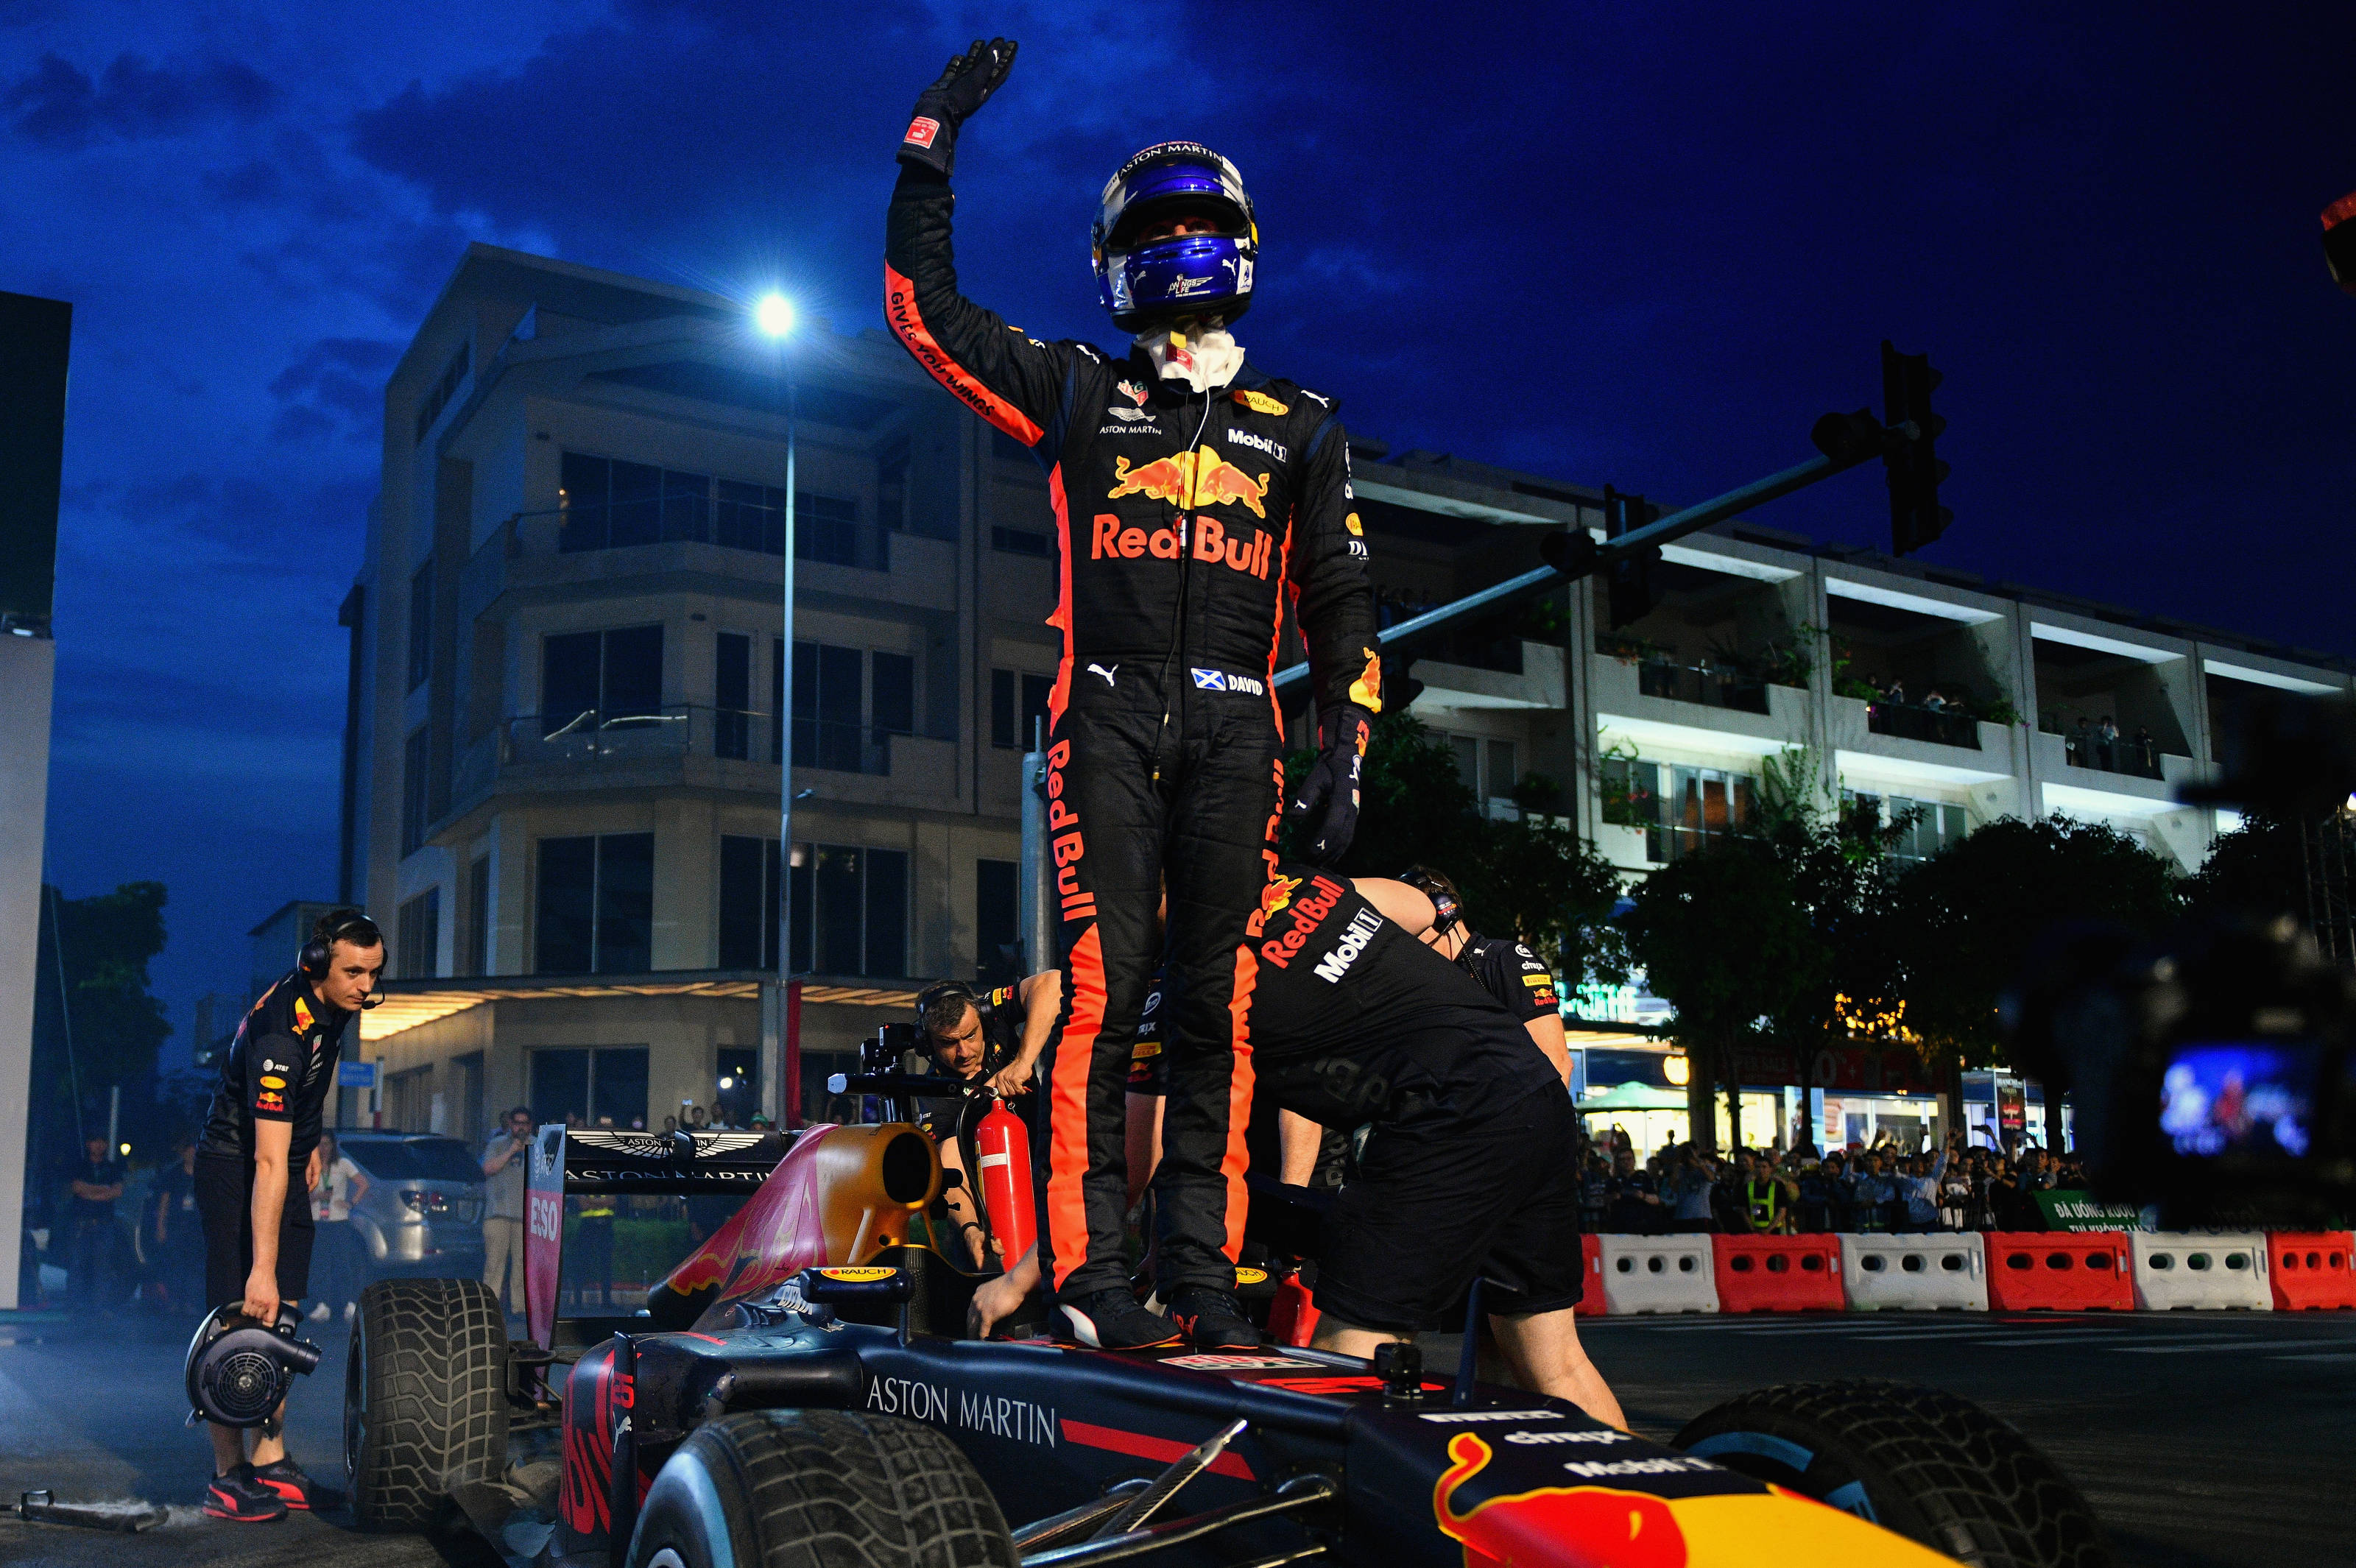 Coulthard And Garrix Star For Aston Martin Red Bull Racing In Vietnam Asc Action Sports Connection